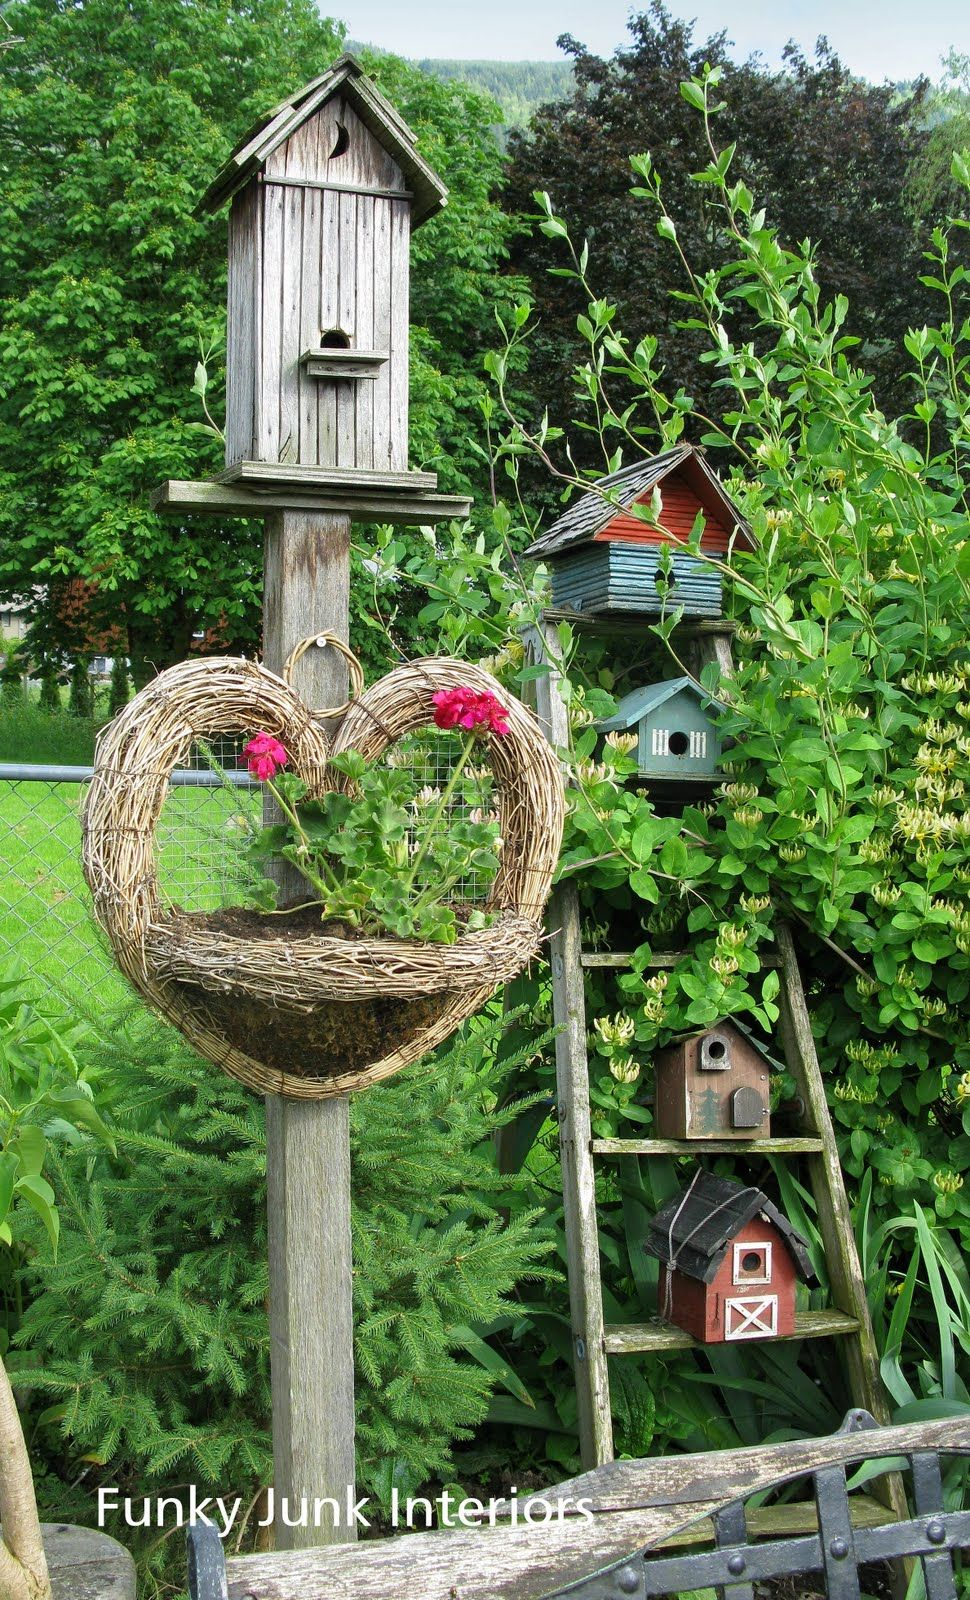 Funky bird homes   Wooden bird houses, Funky junk and Bird houses